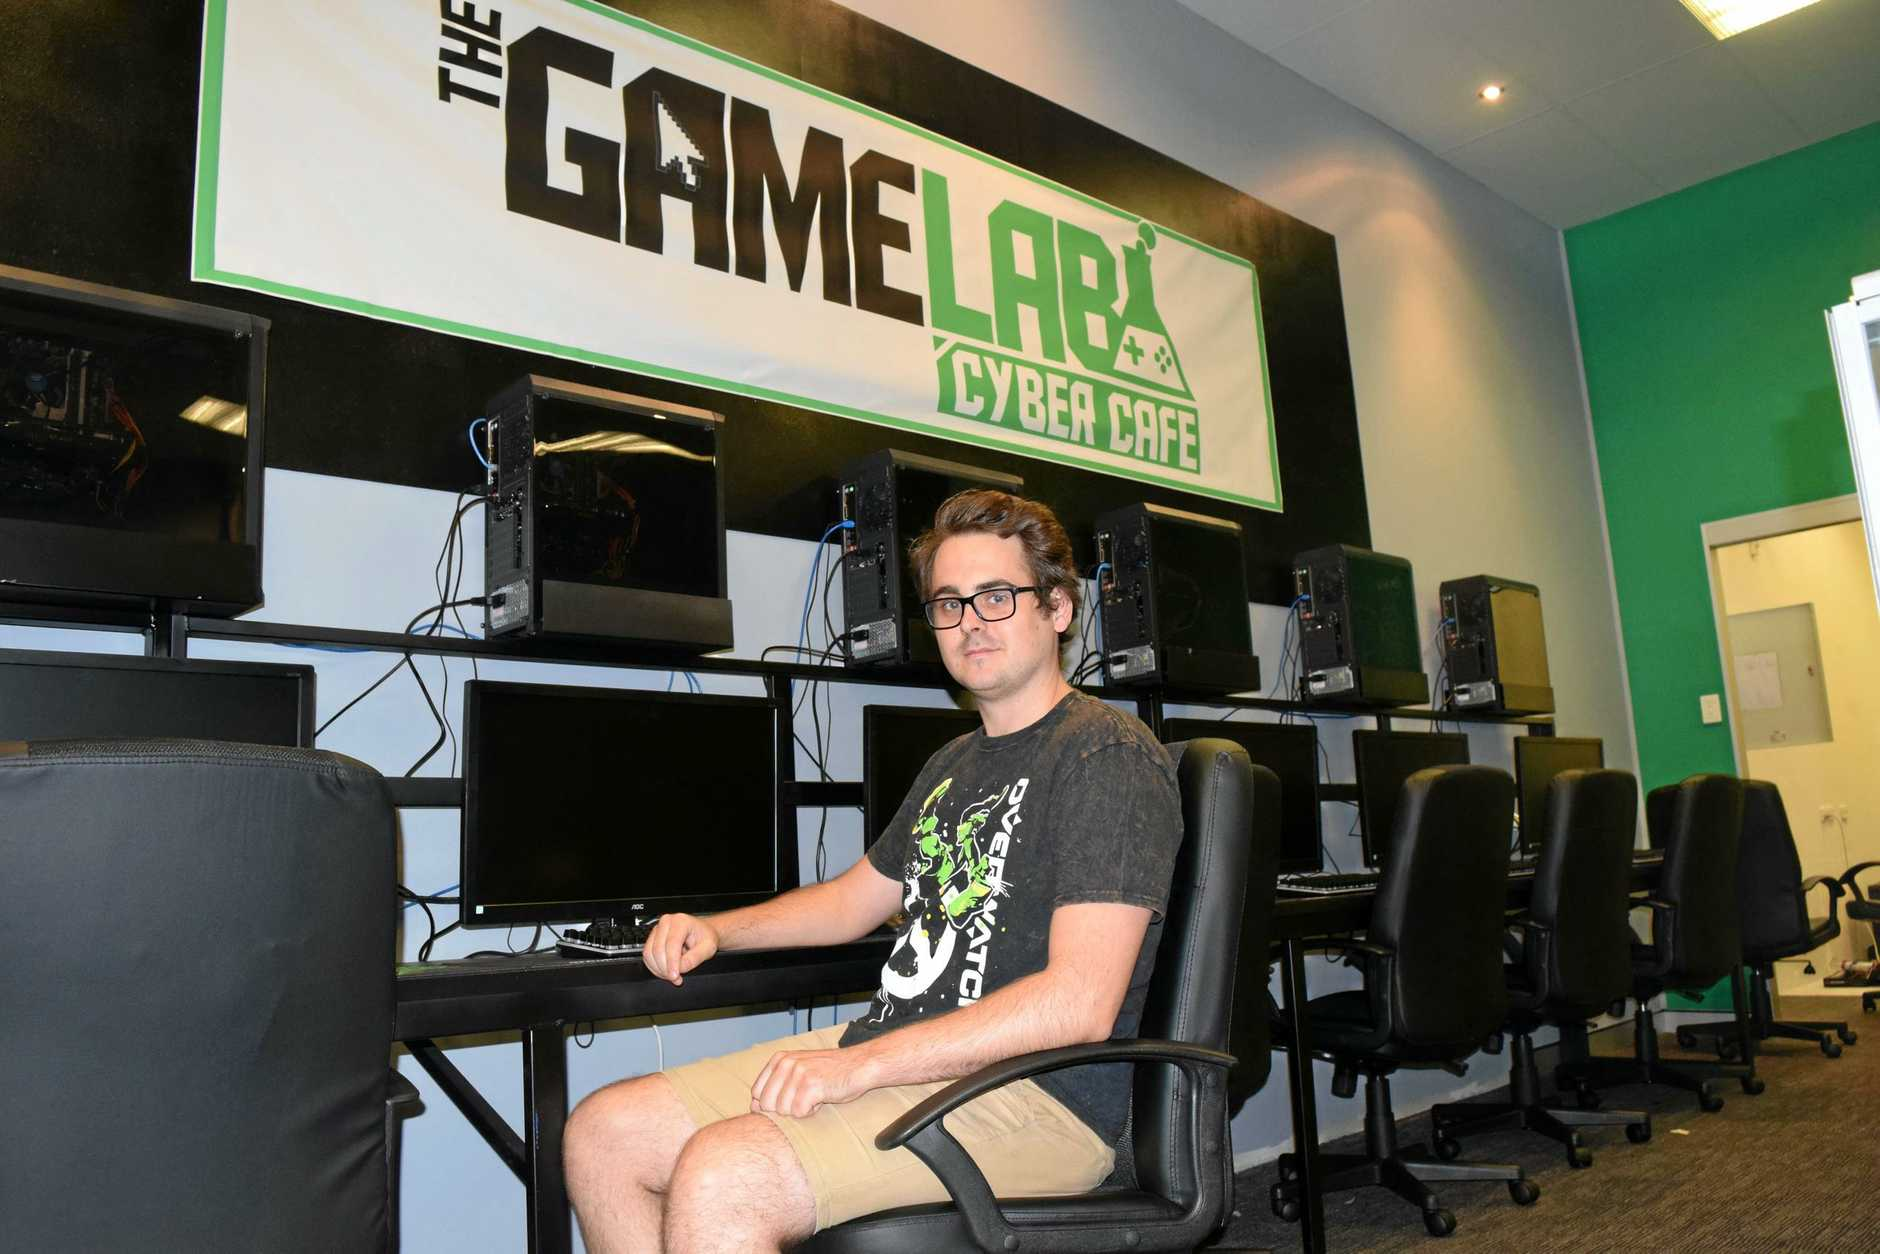 GOING CYBER: Chris Shanahan puts some of the final touches on the Game Lab Cyber Cafe ahead of its opening on Friday. The store will feature about 18 computers and four consoles for game enthusiasts to play on.